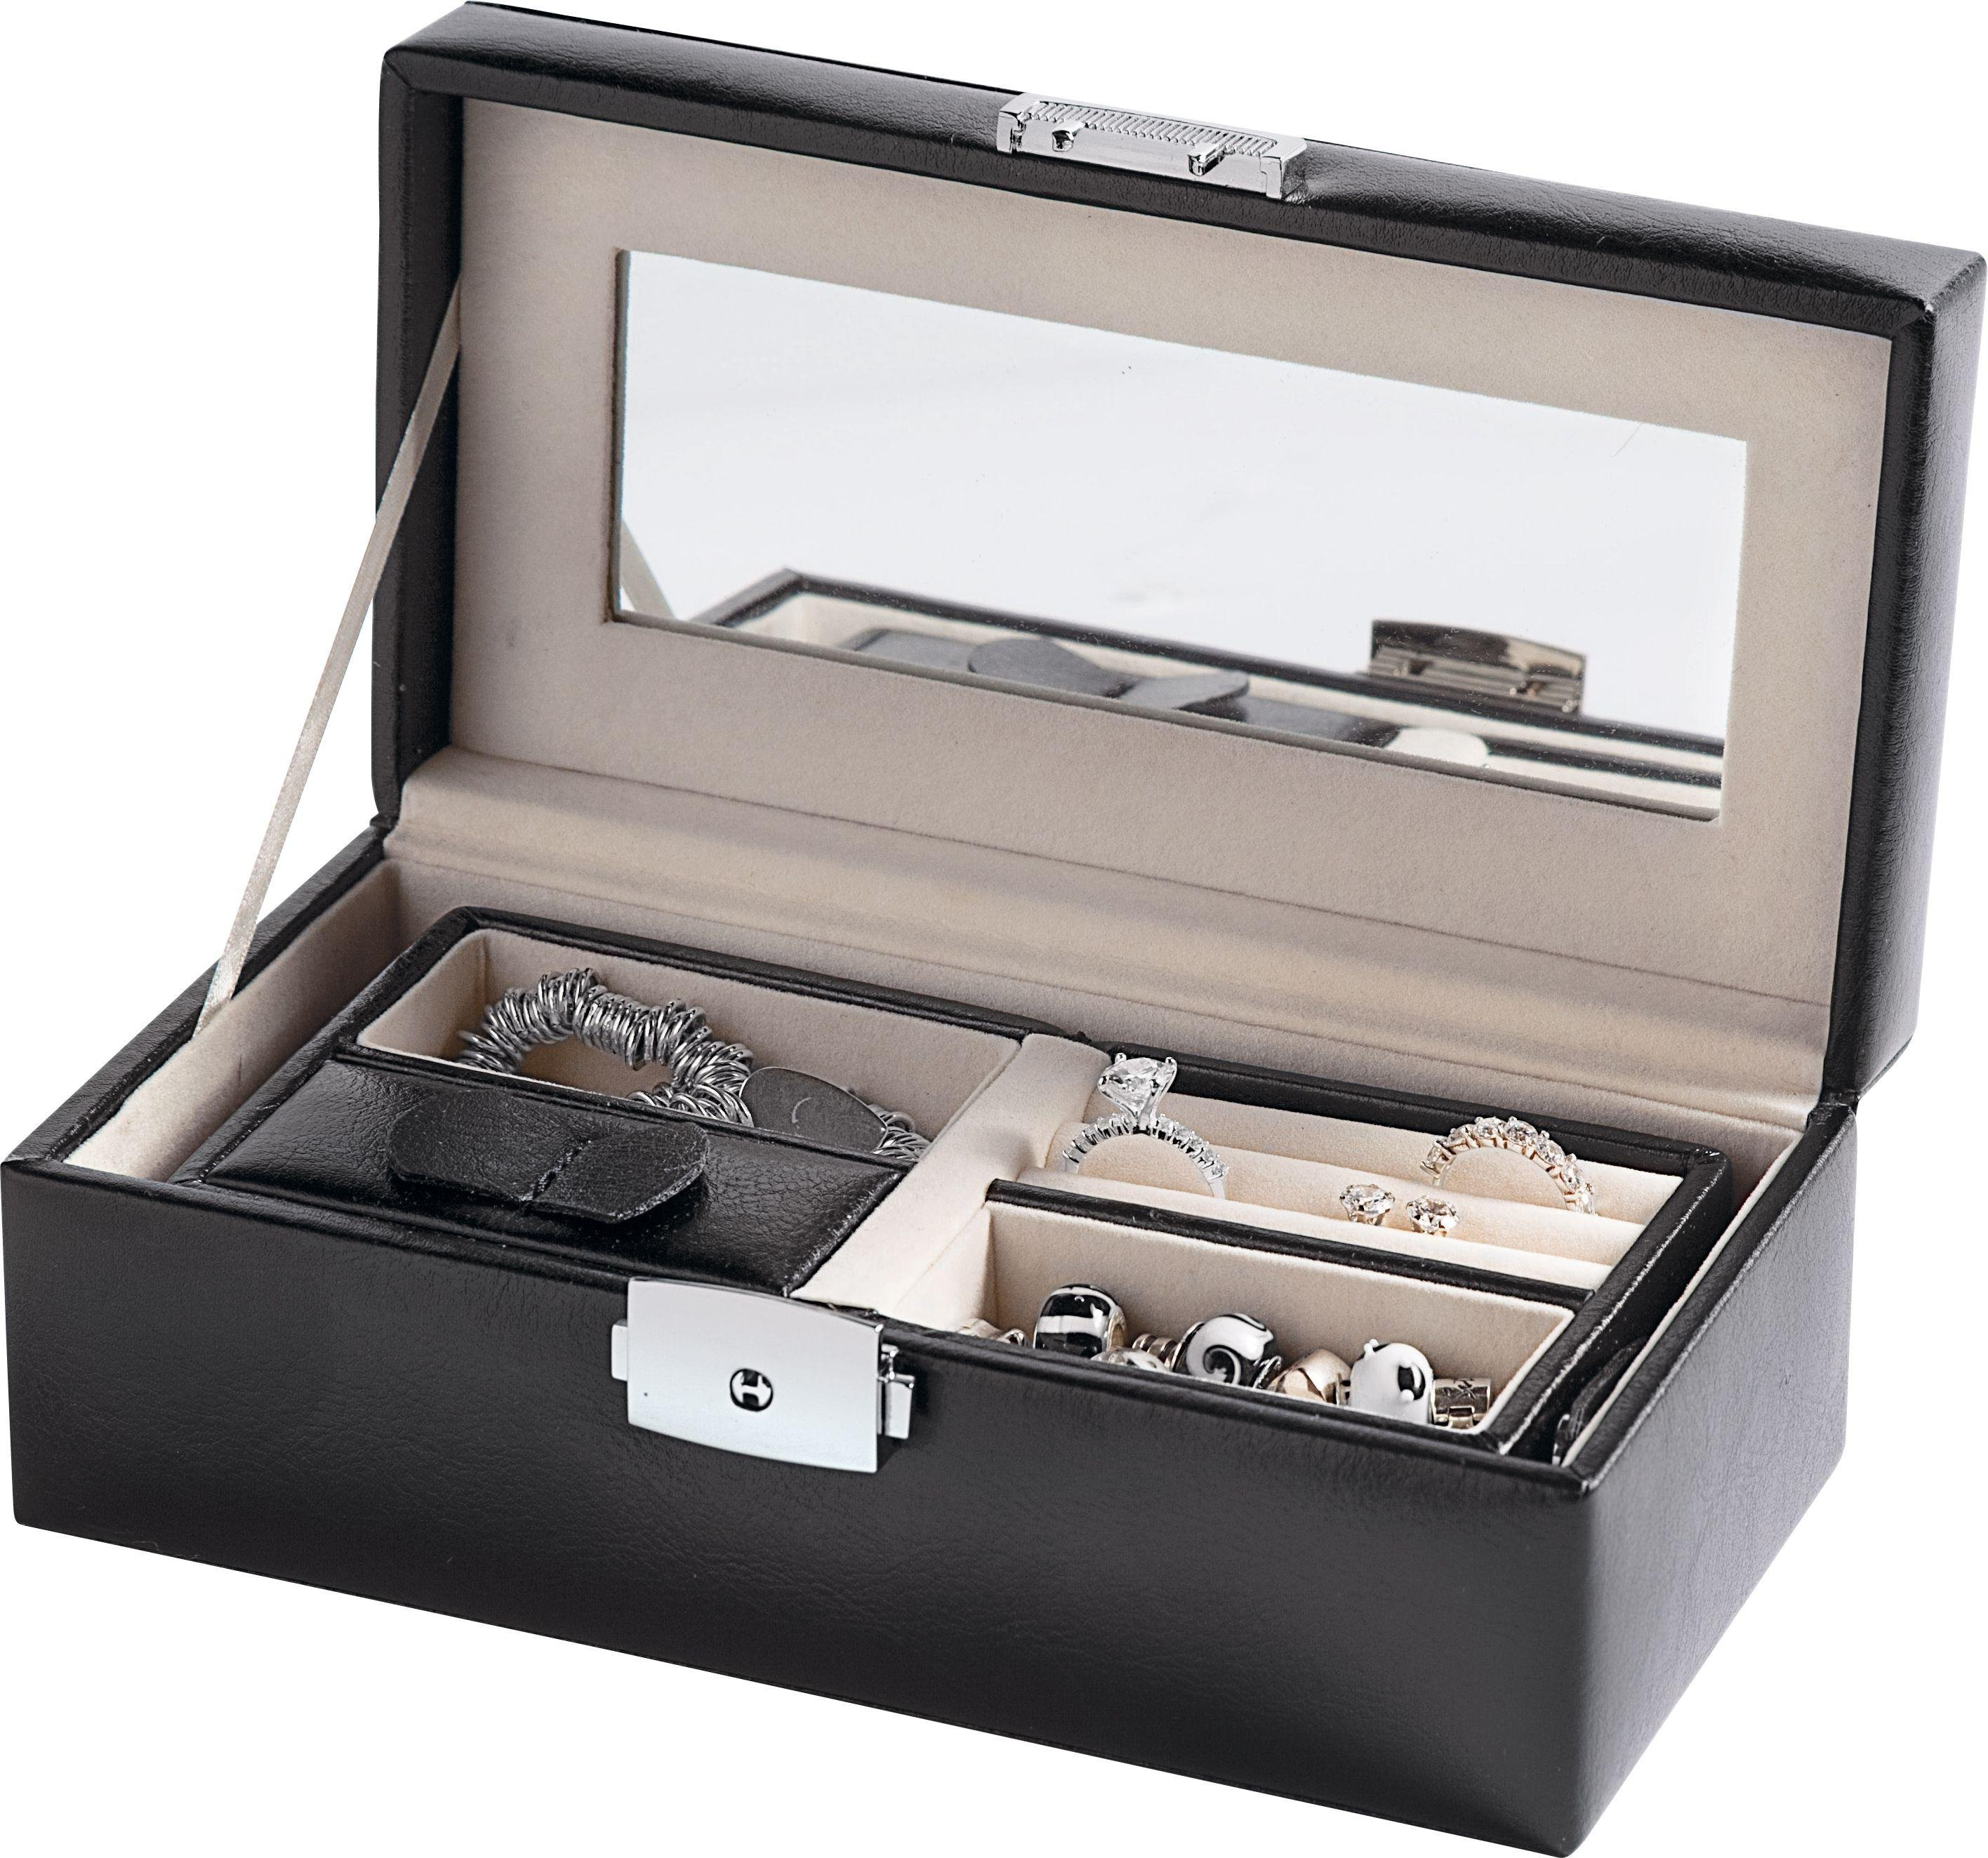 Jewellery boxes and hangers Argos